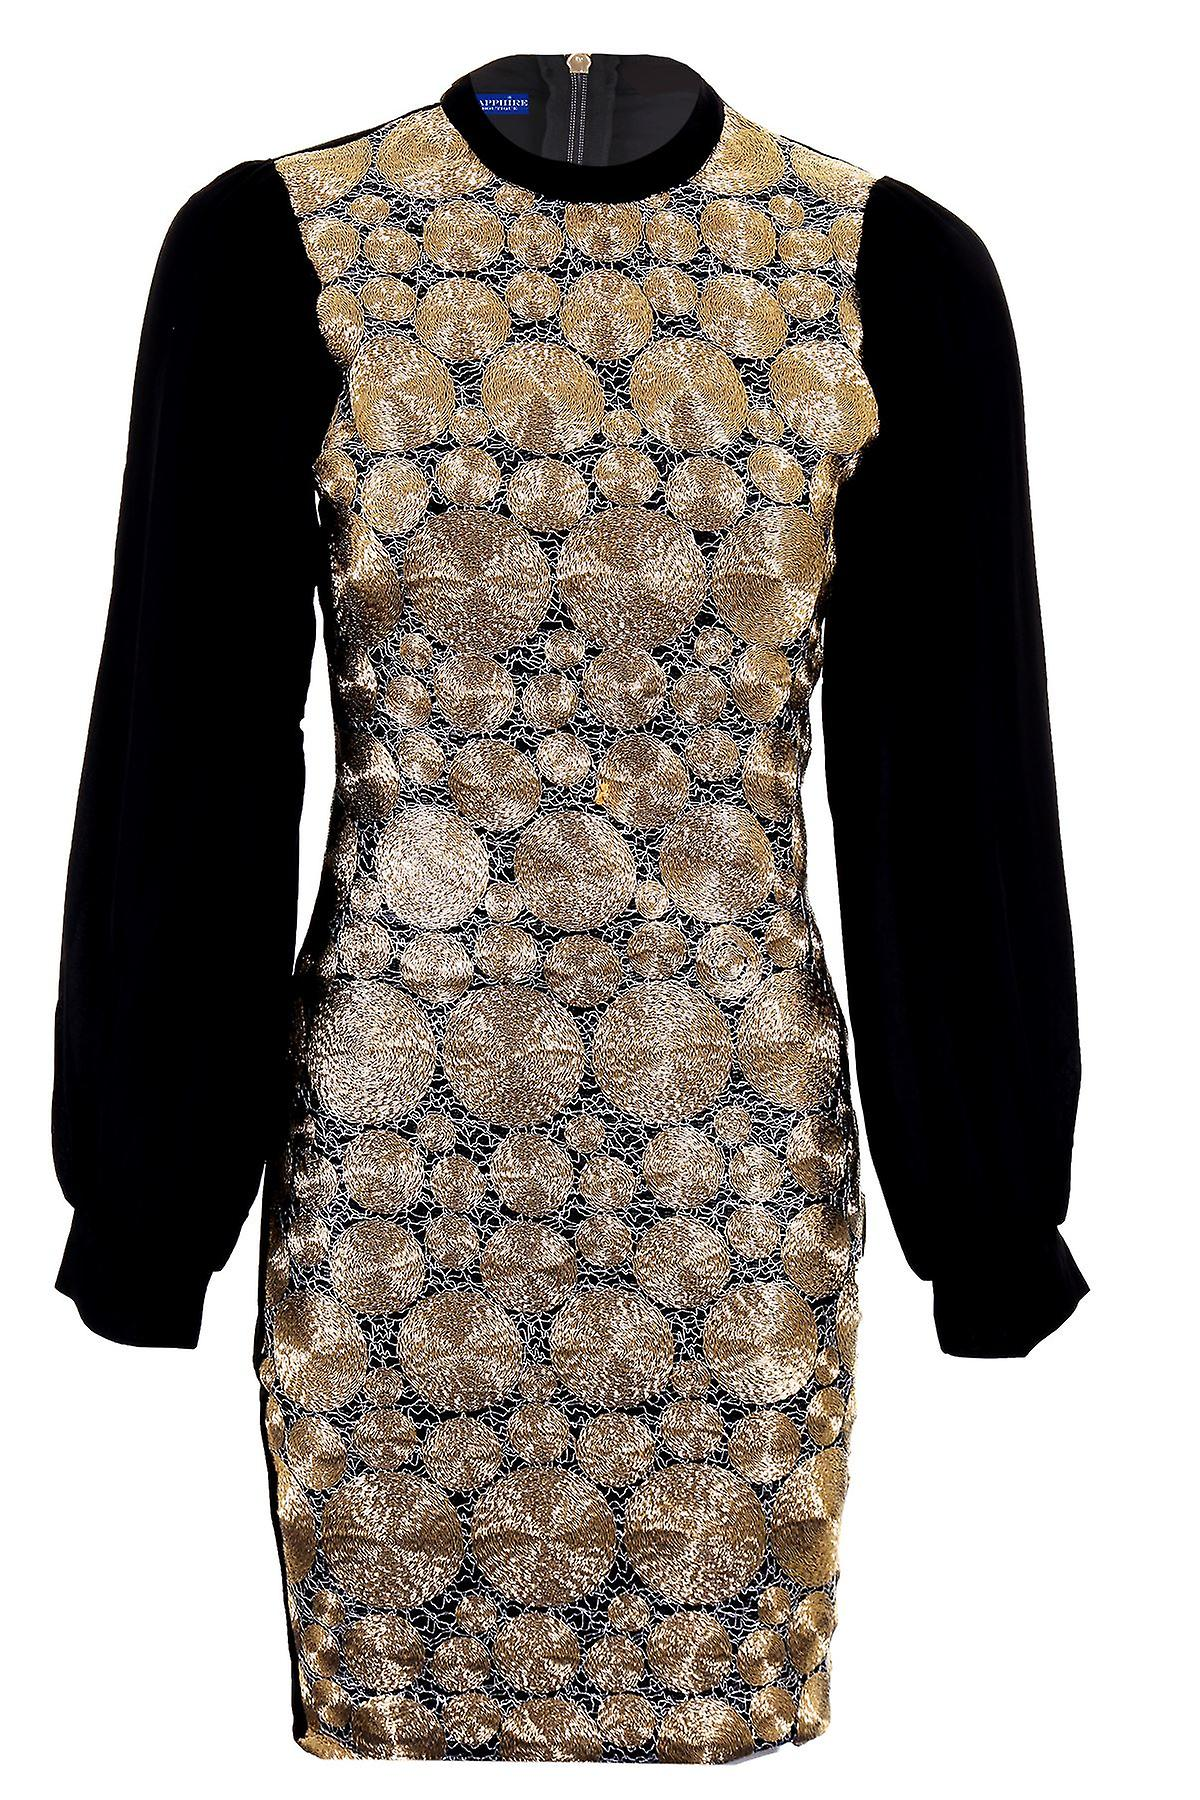 Ladies Chiffon Sleeve Gold Black Texture Wired Plain Back Bodycon Womens Dress